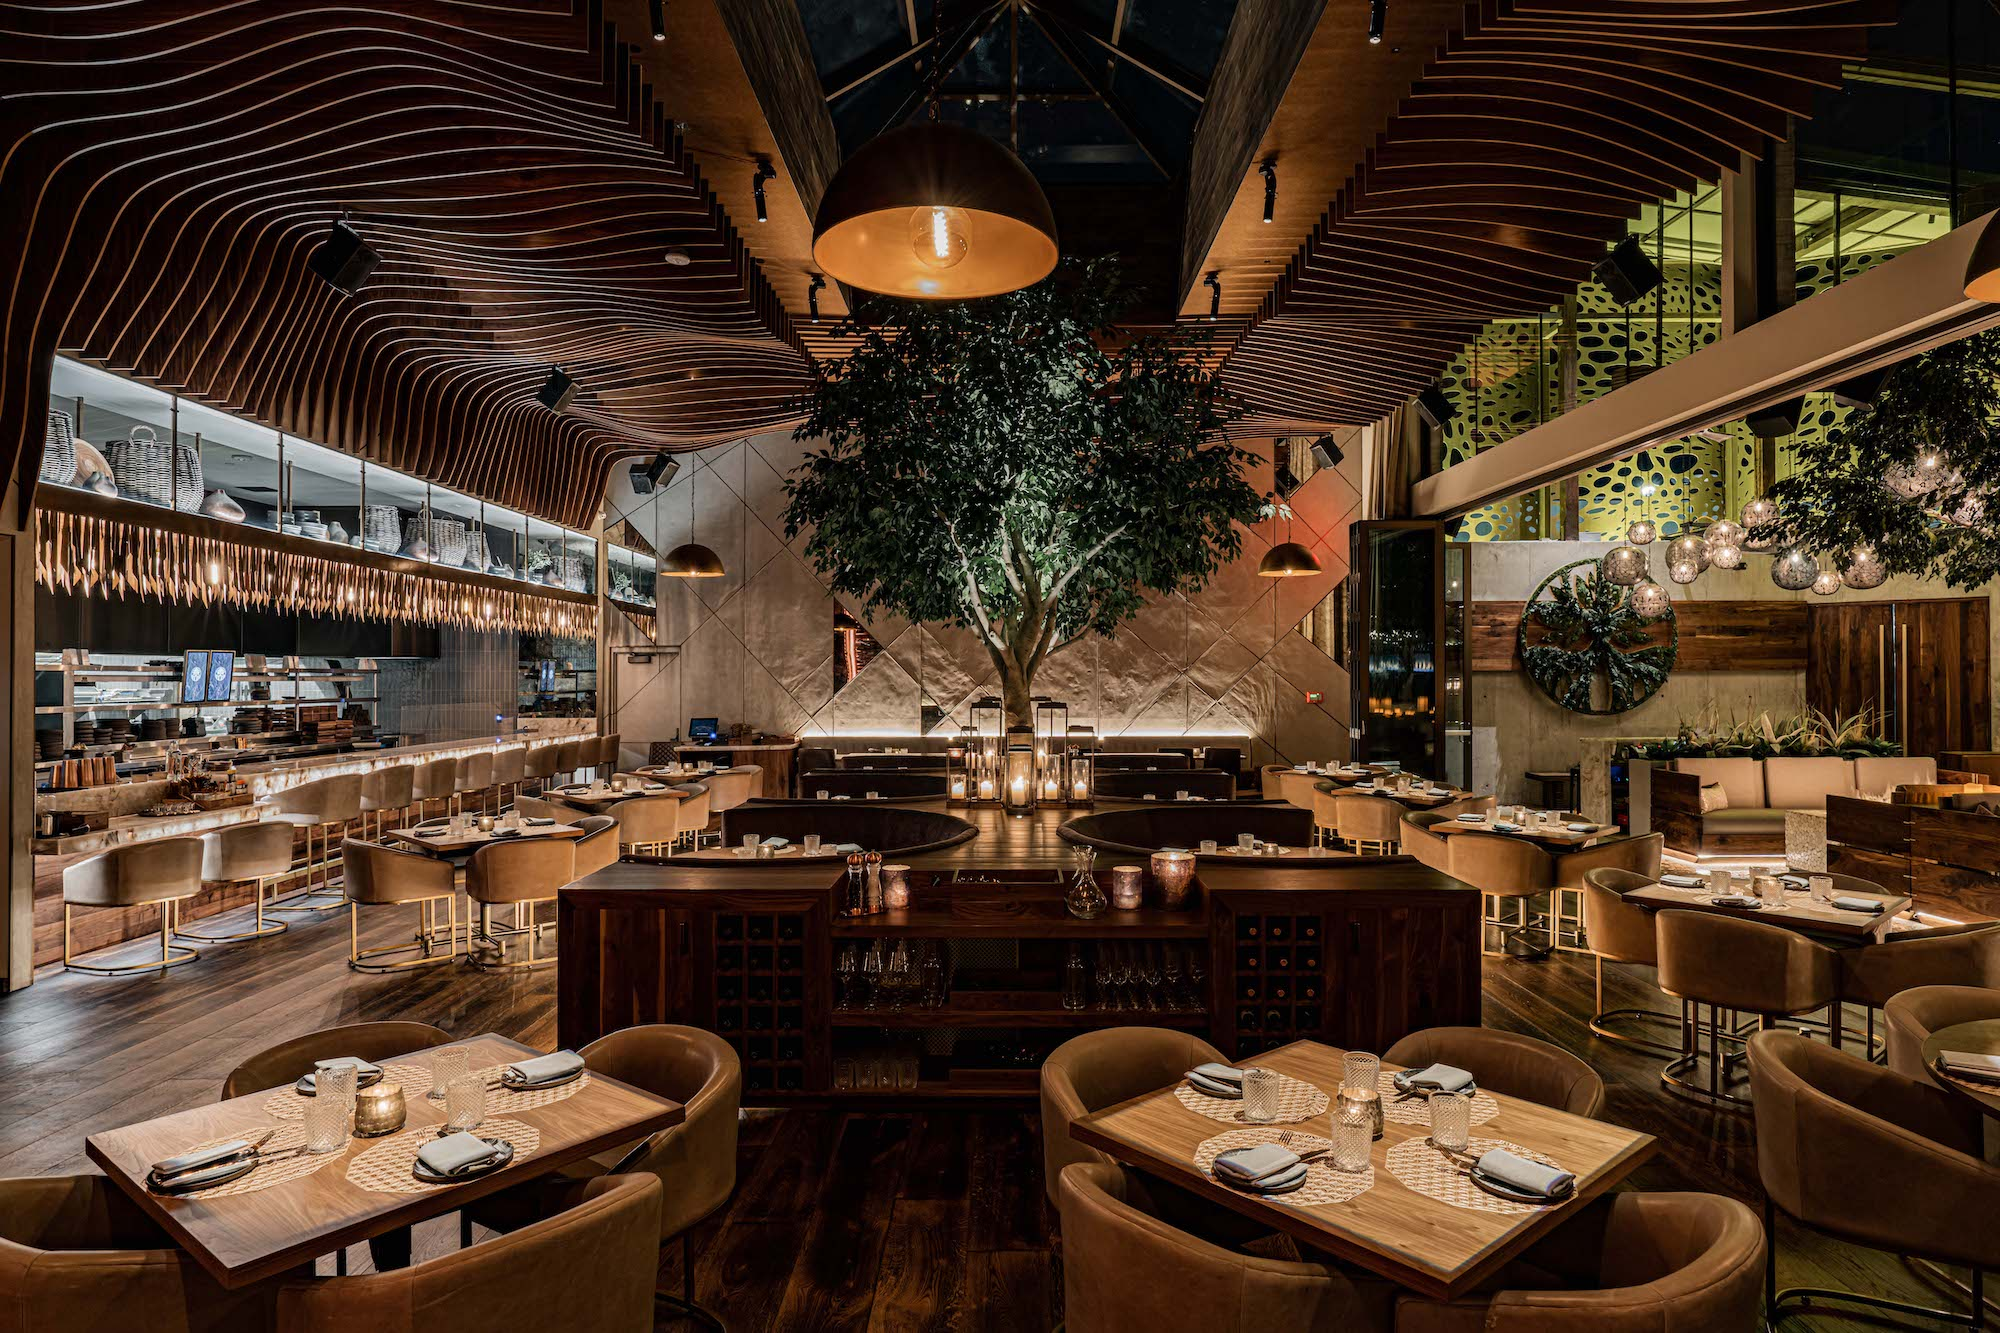 A restaurant dining room with a tree in the middle